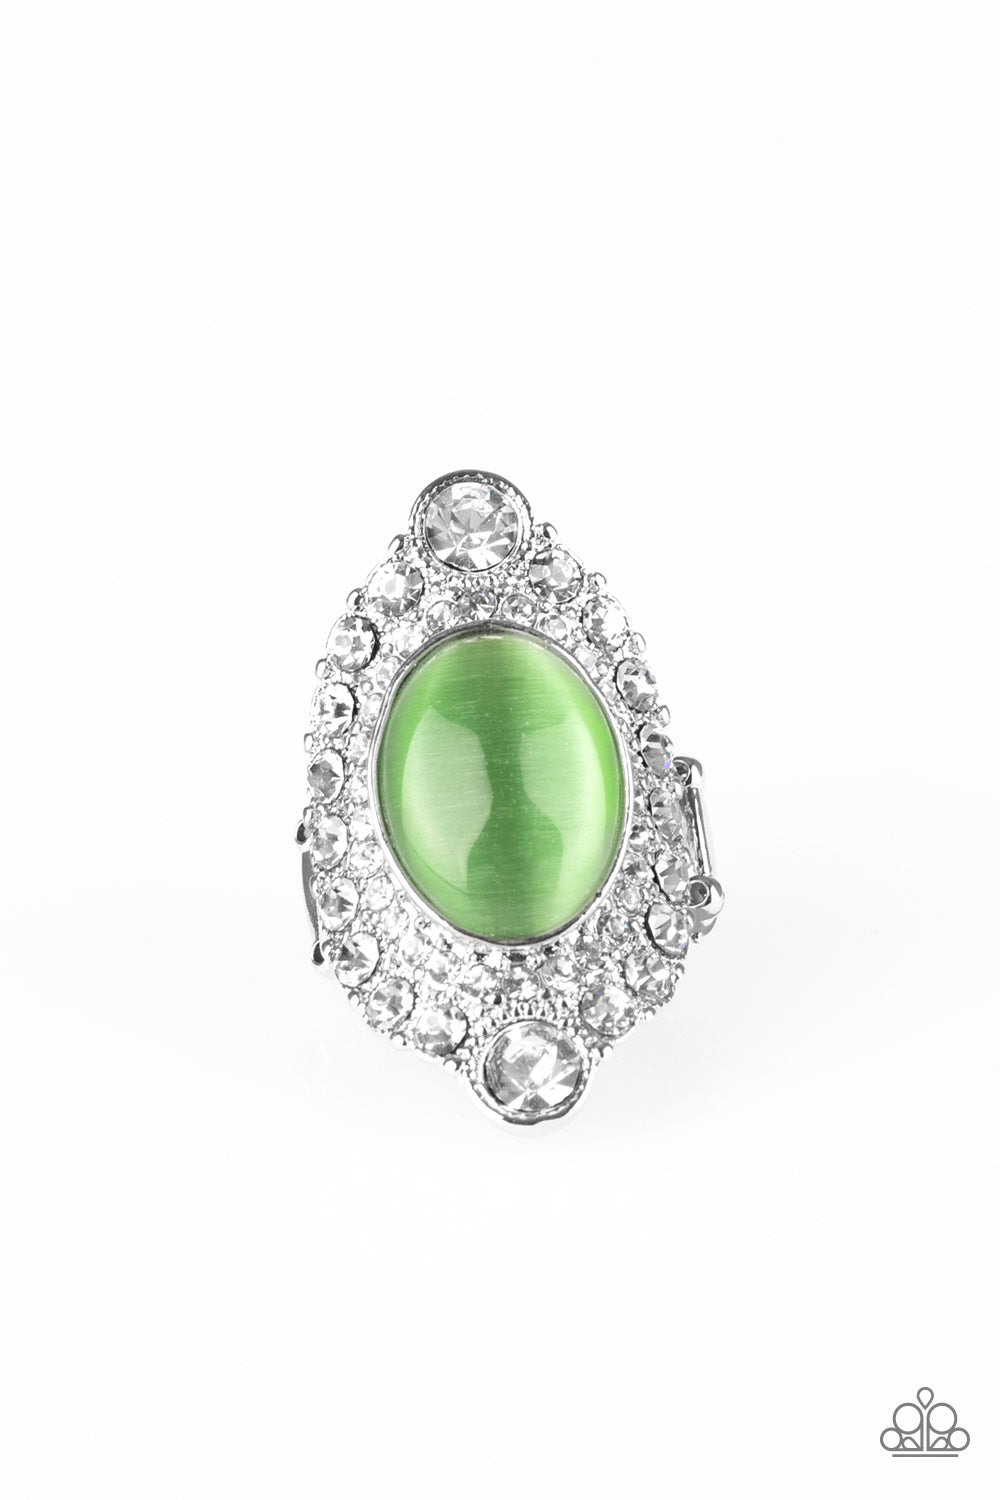 Paparazzi Riviera Royalty Green Papa Ring R115